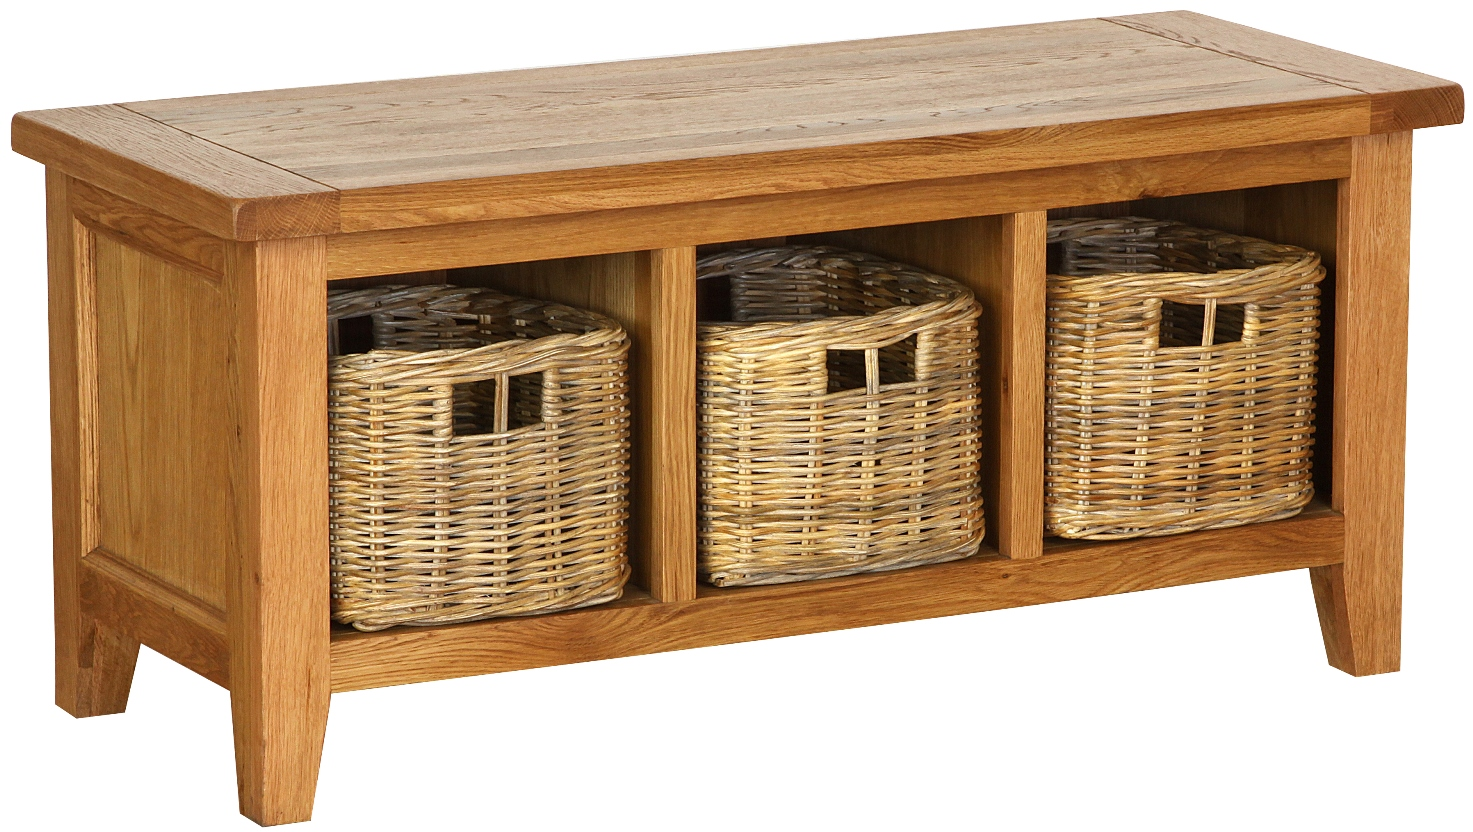 STORAGE BENCH WITH BASKETS  w 110 x d 45 x h 50 cm  € 654  Product Code: NB078